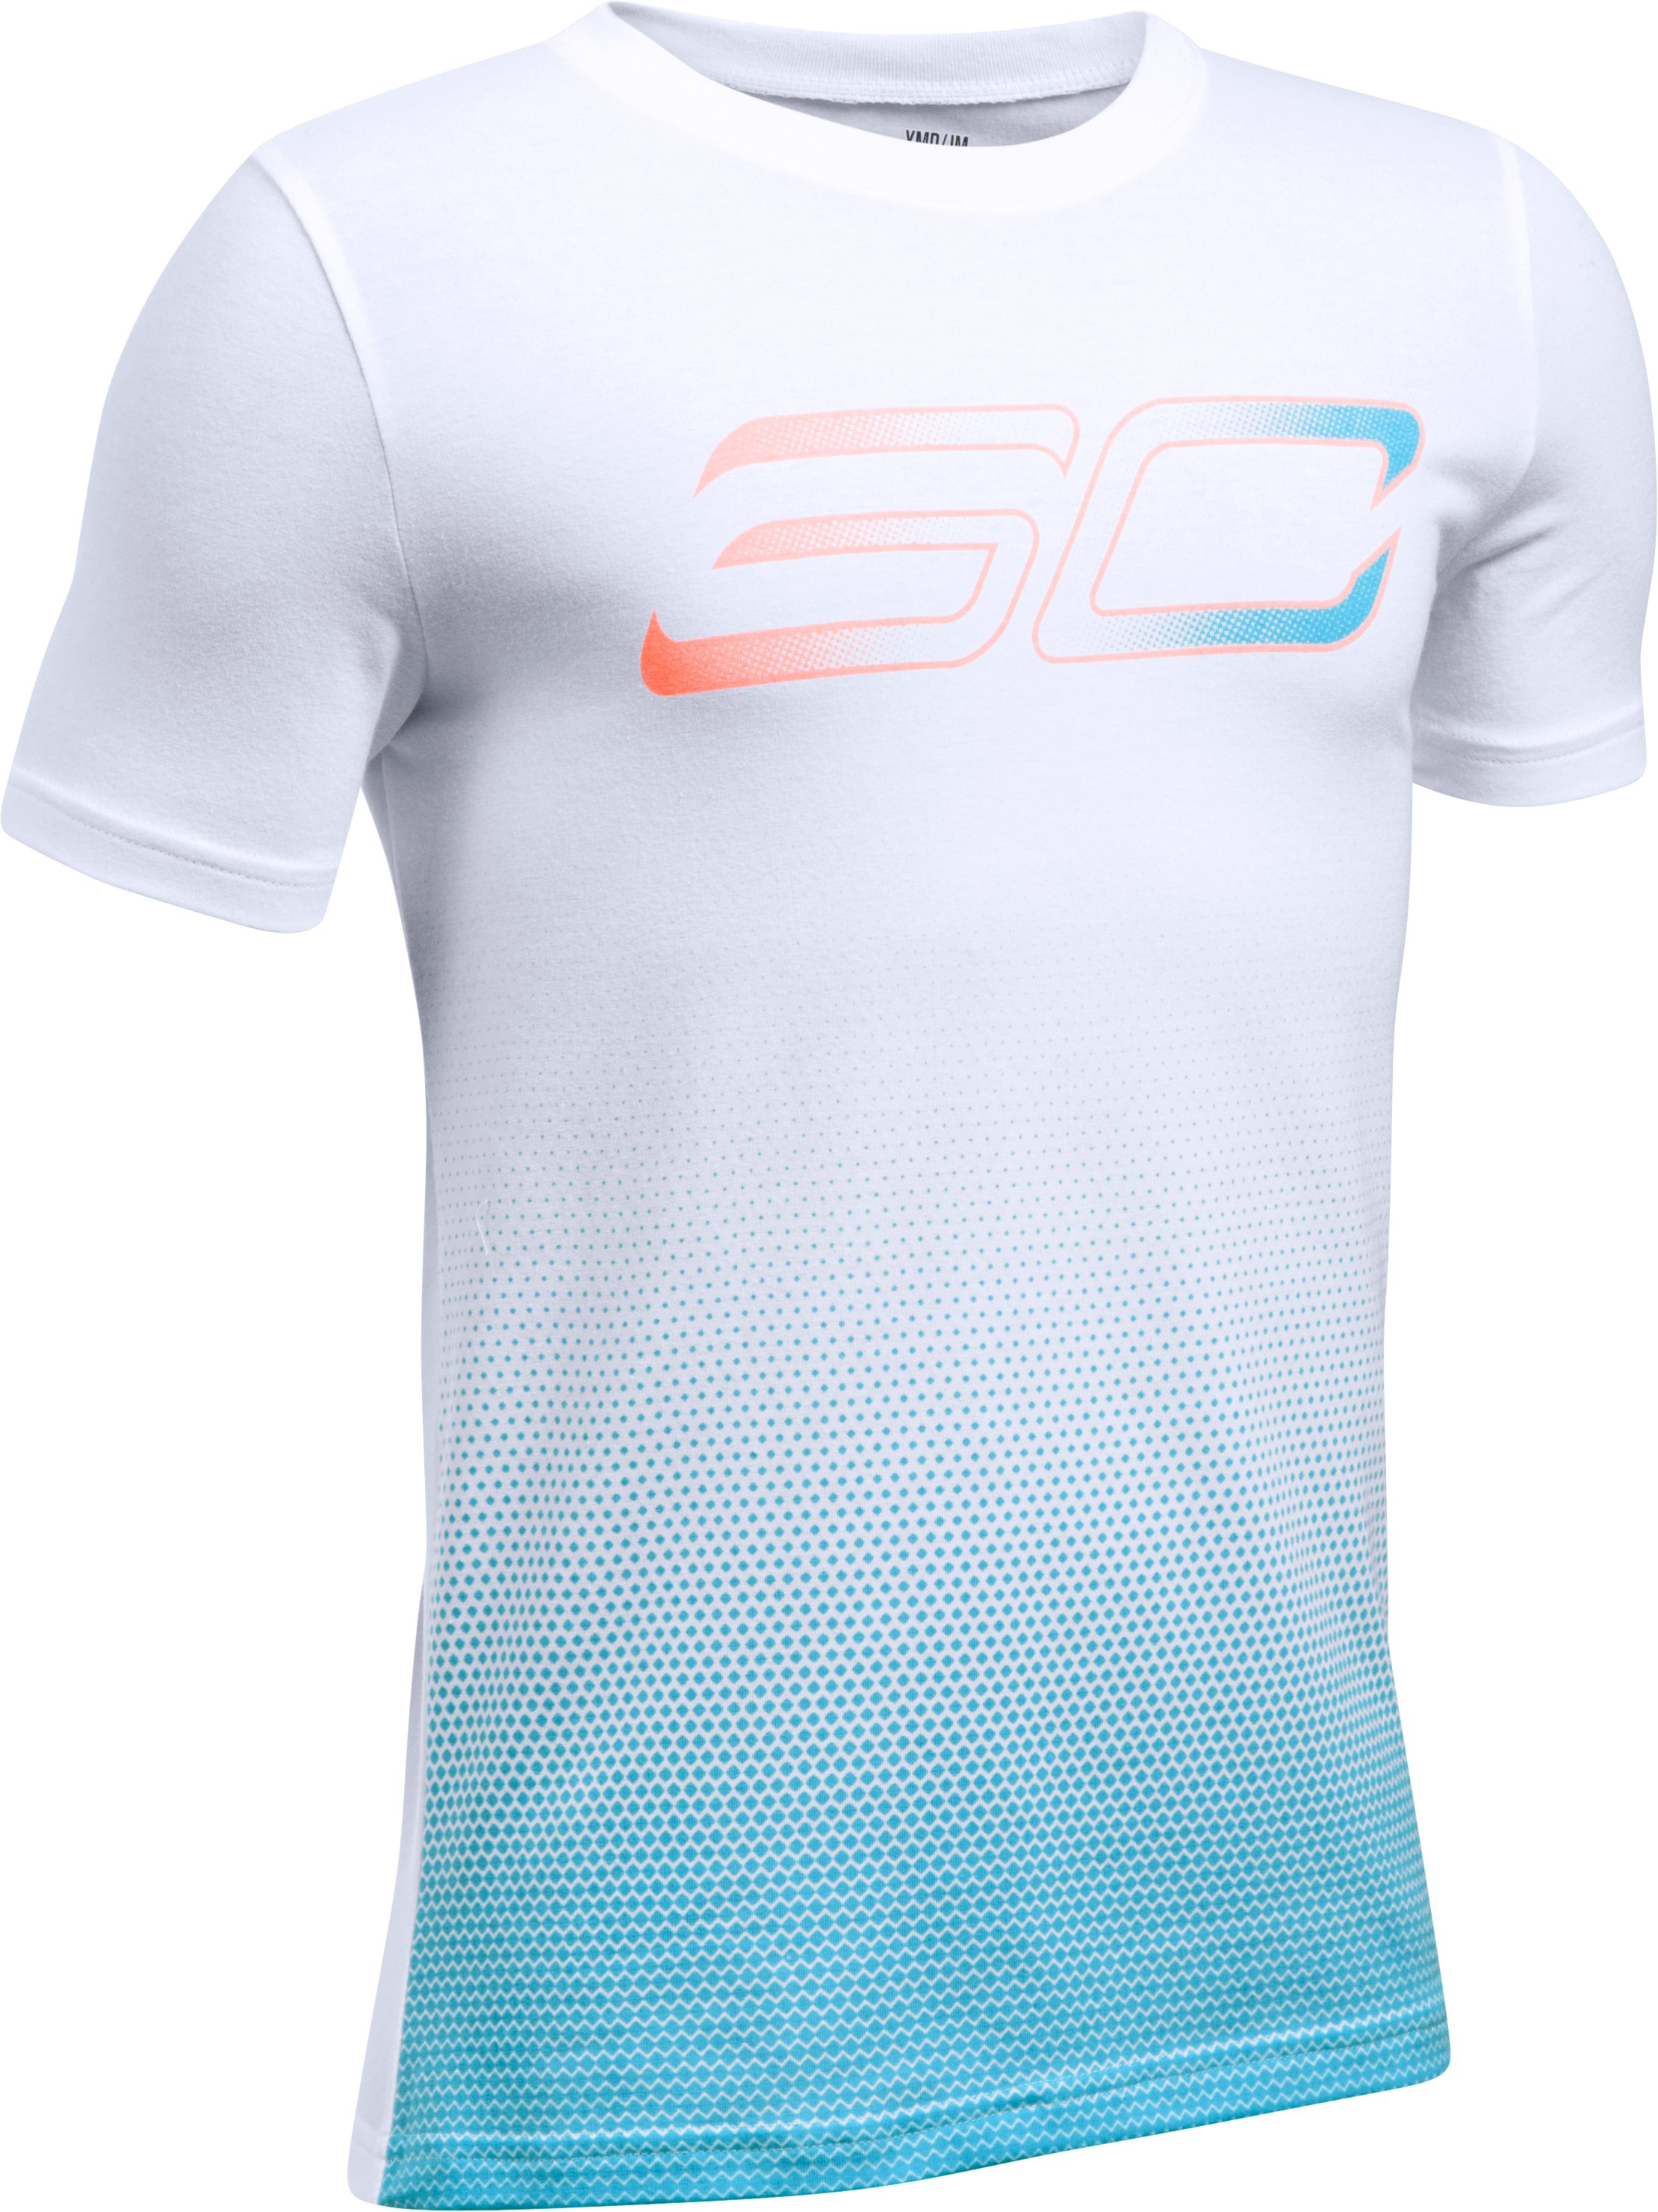 Boys' SC30 Player Fade Short Sleeve T-Shirt, White